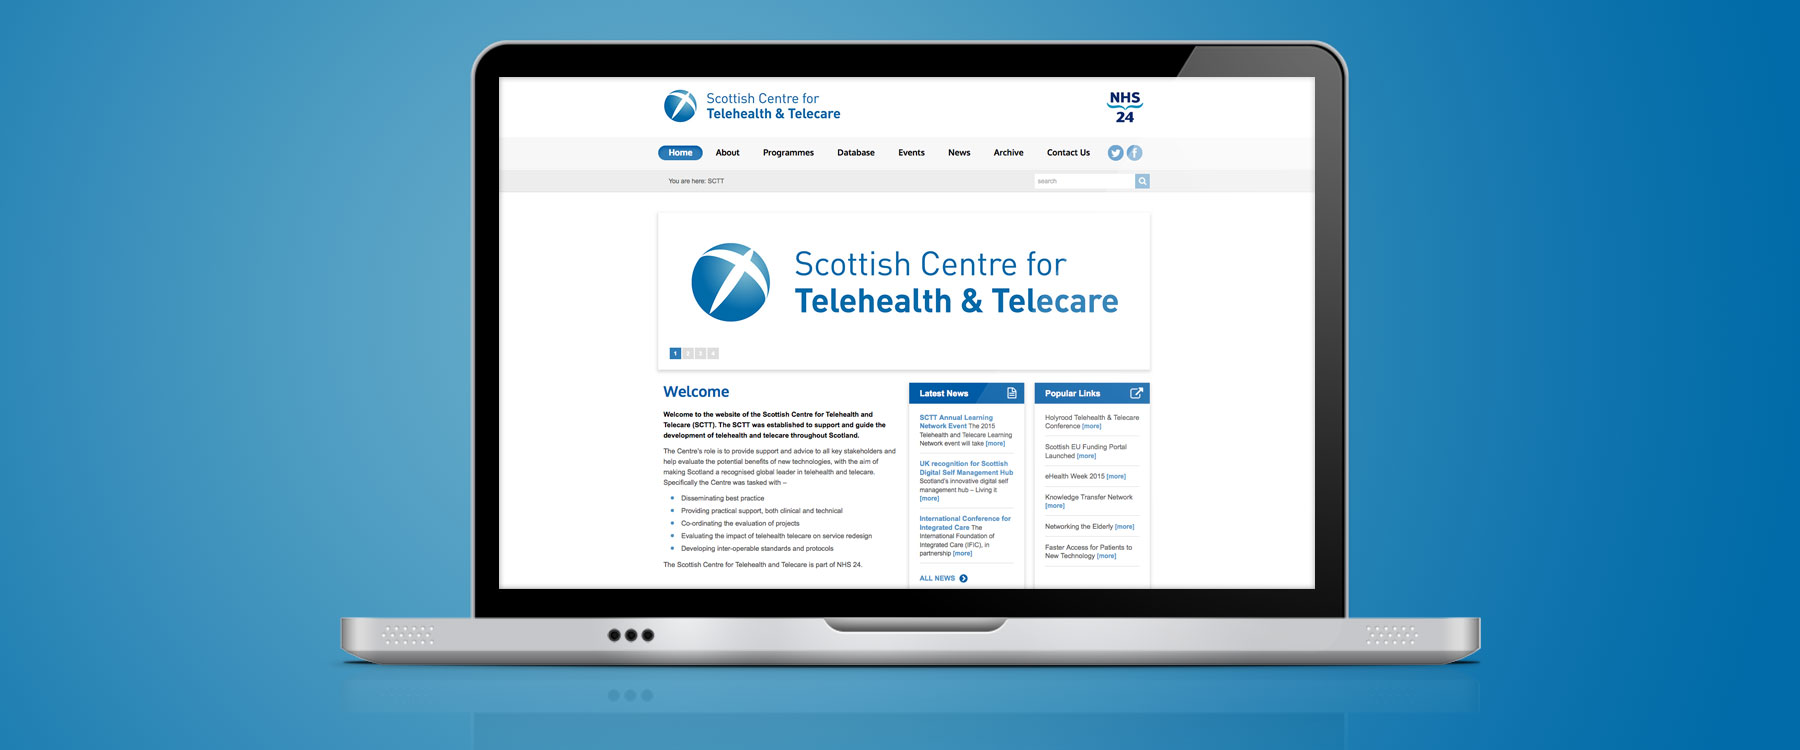 reflexblue-NHS-24-Wide-Image-1